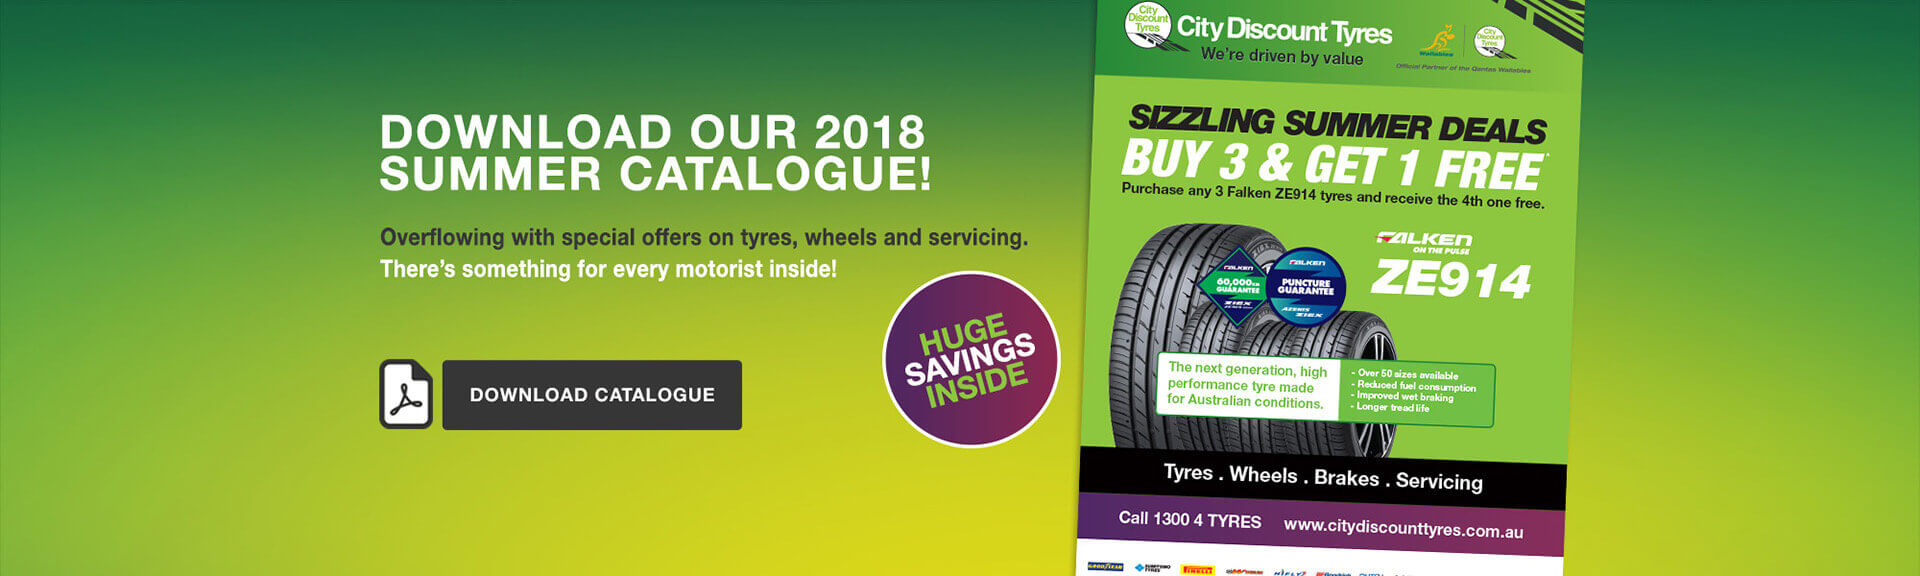 City Discount Tyres Summer Catalogue